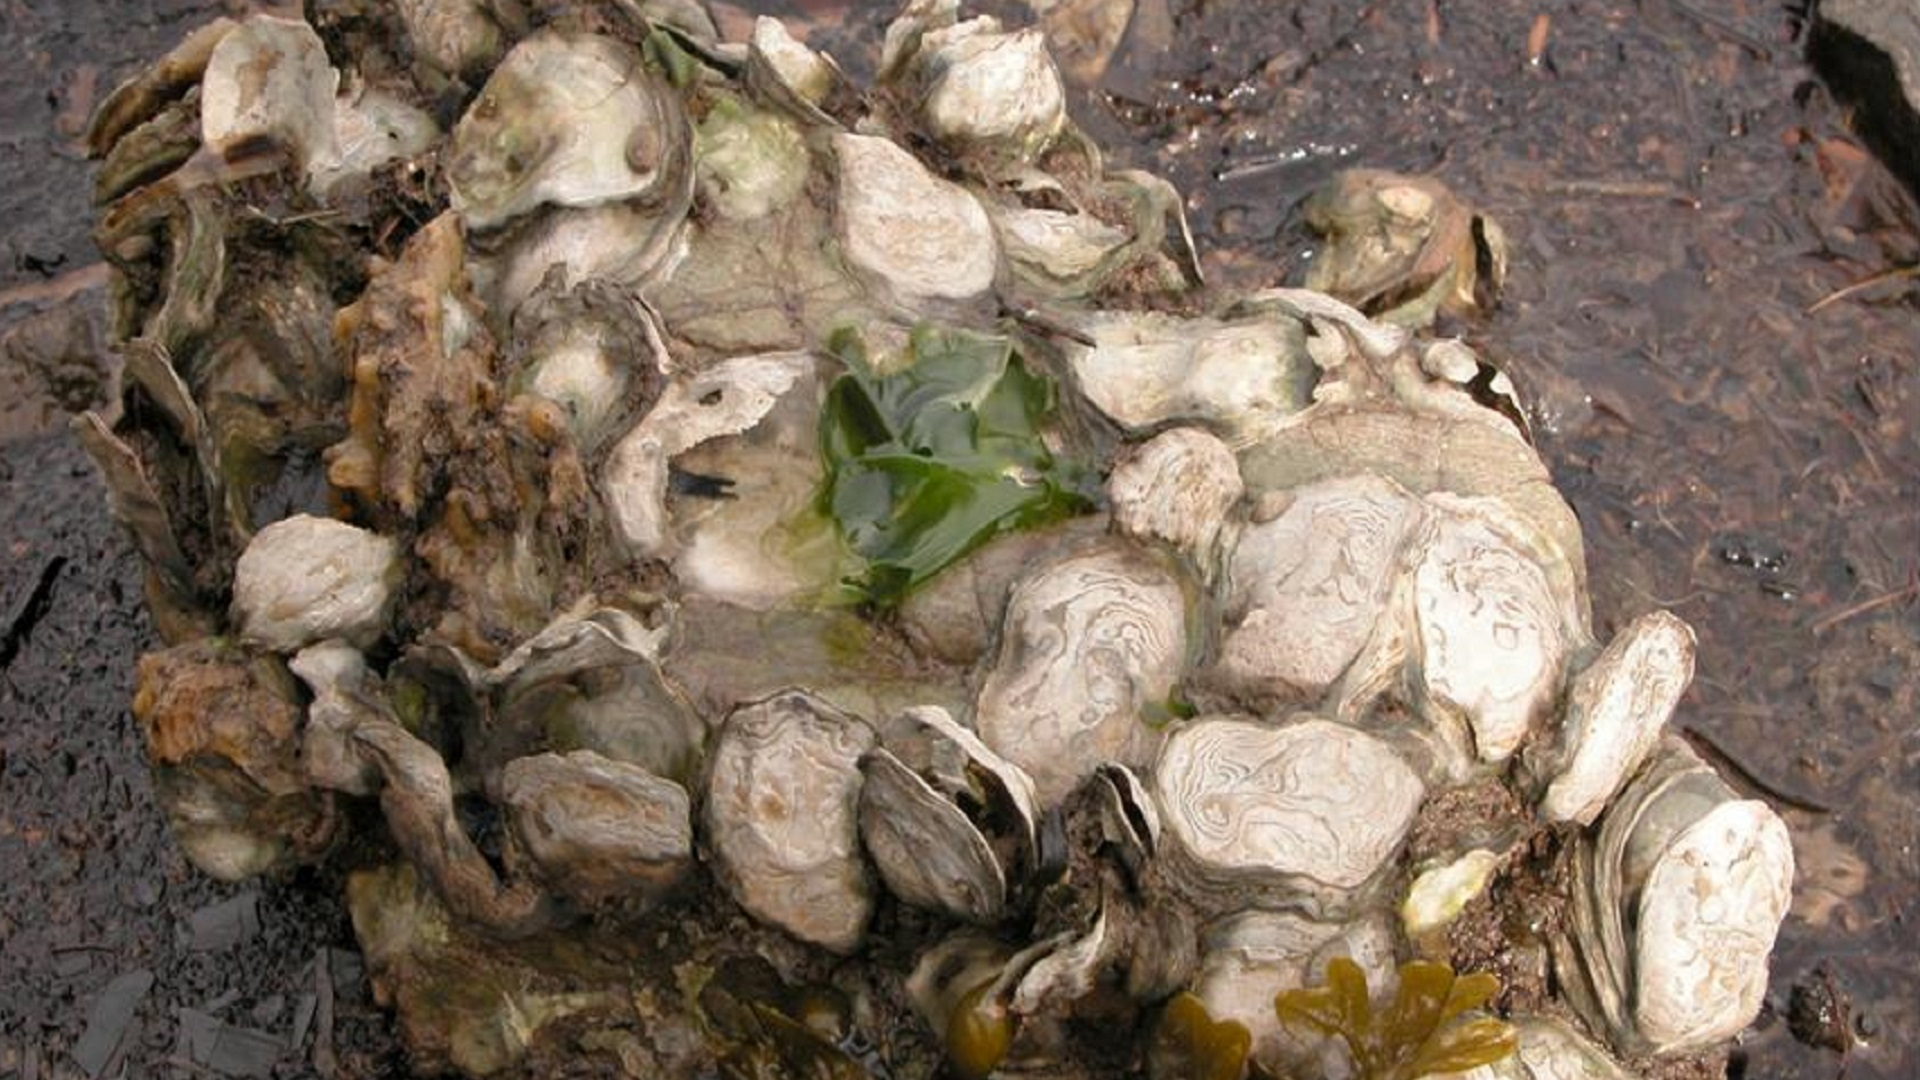 Climate Change May Shrink Northern California Oyster Habitat